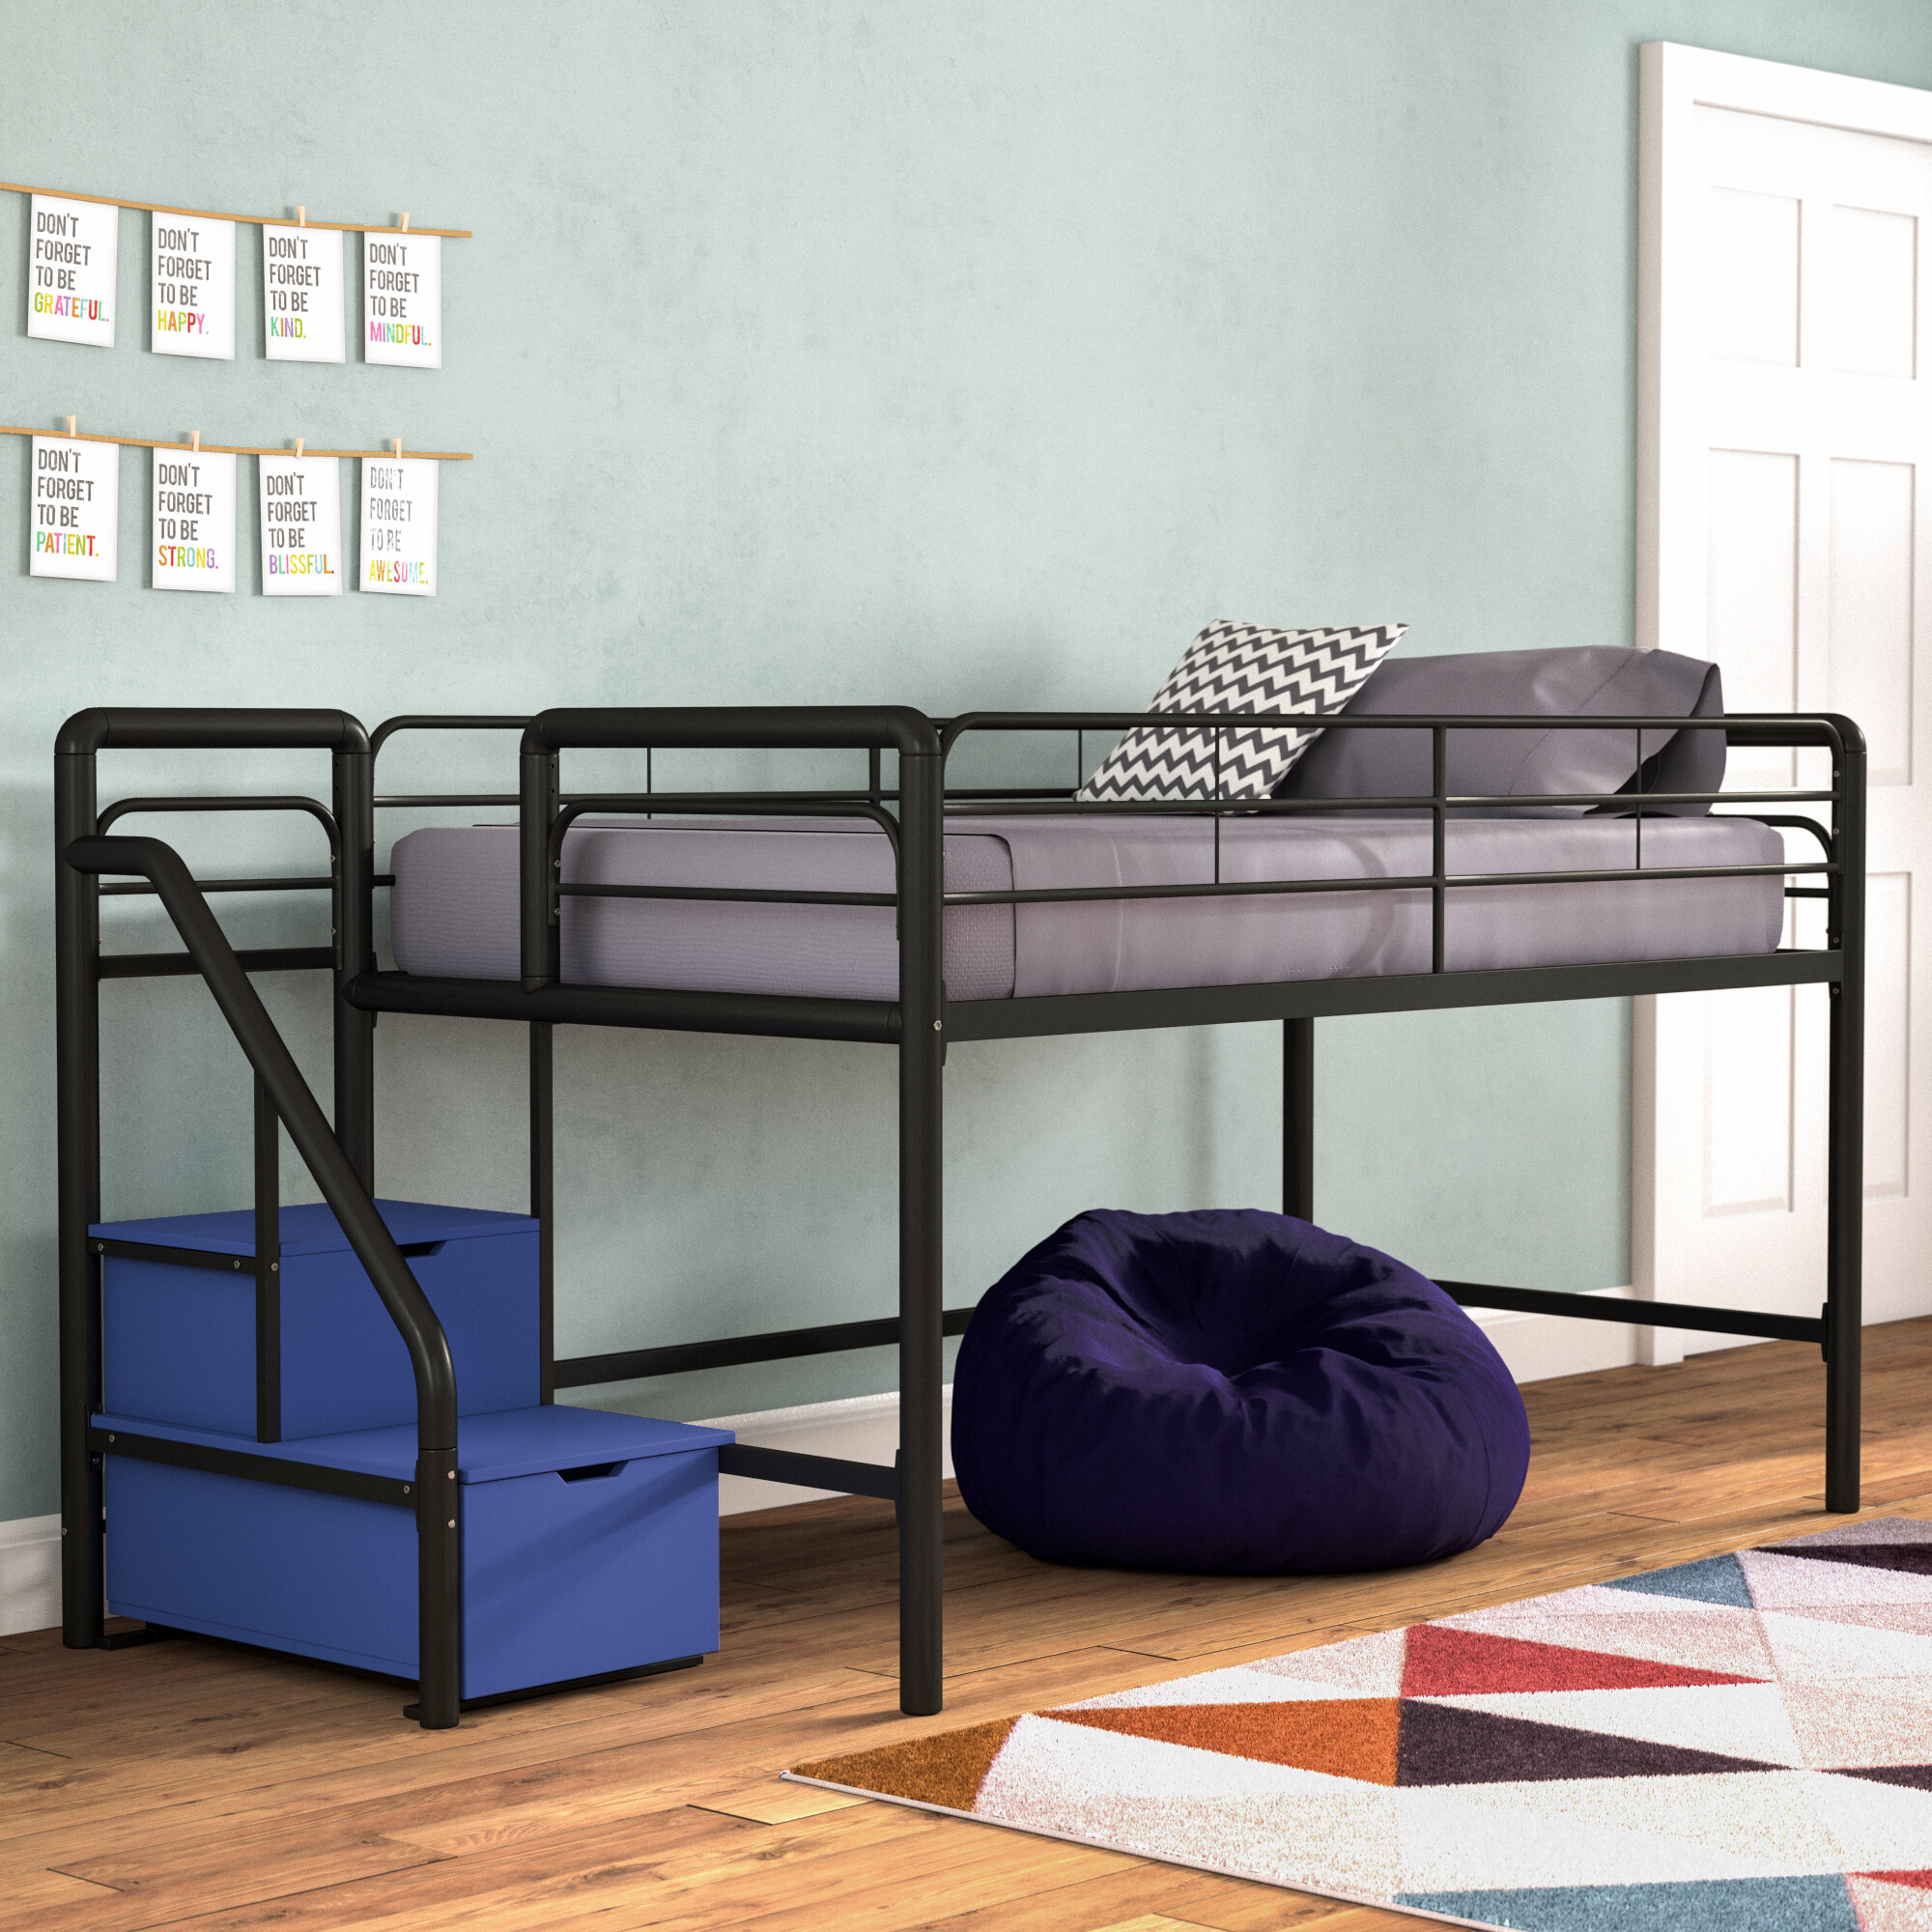 Twin Loft Bed.Zoomie Kids Bewley Junior Twin Loft Bed With Storage